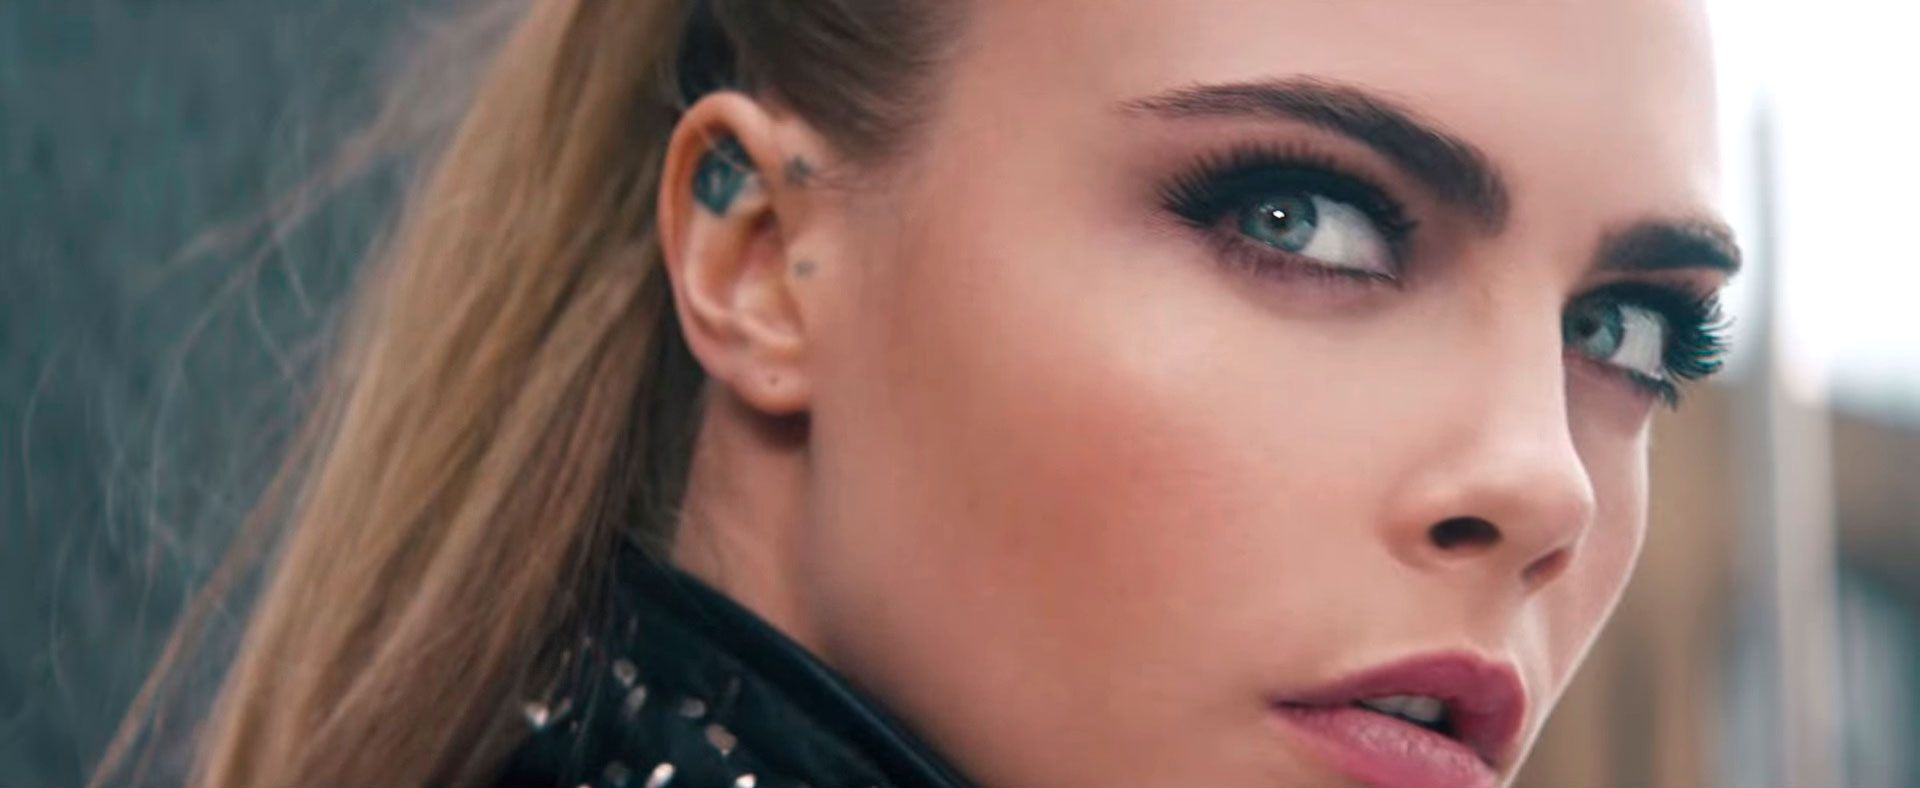 f1b97155ad7 Cara Delevingne S Rimmel Make Up Advert Pulled After Misleading Customers